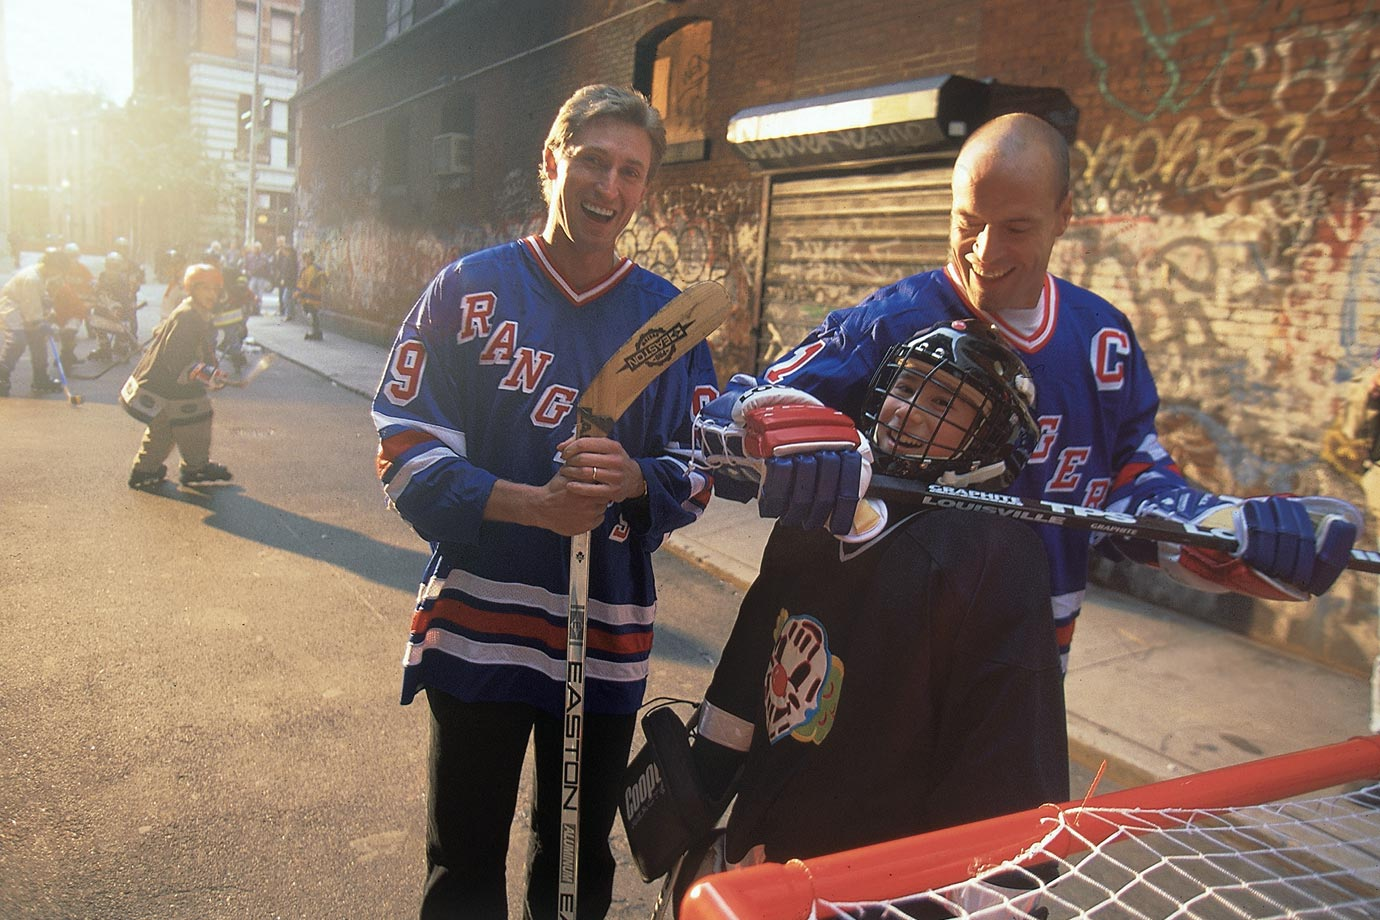 By 1996, Gretzky had moved on to the New York Rangers after a brief stay with St. Louis, reuniting him with former Oiler teammate Mark Messier.